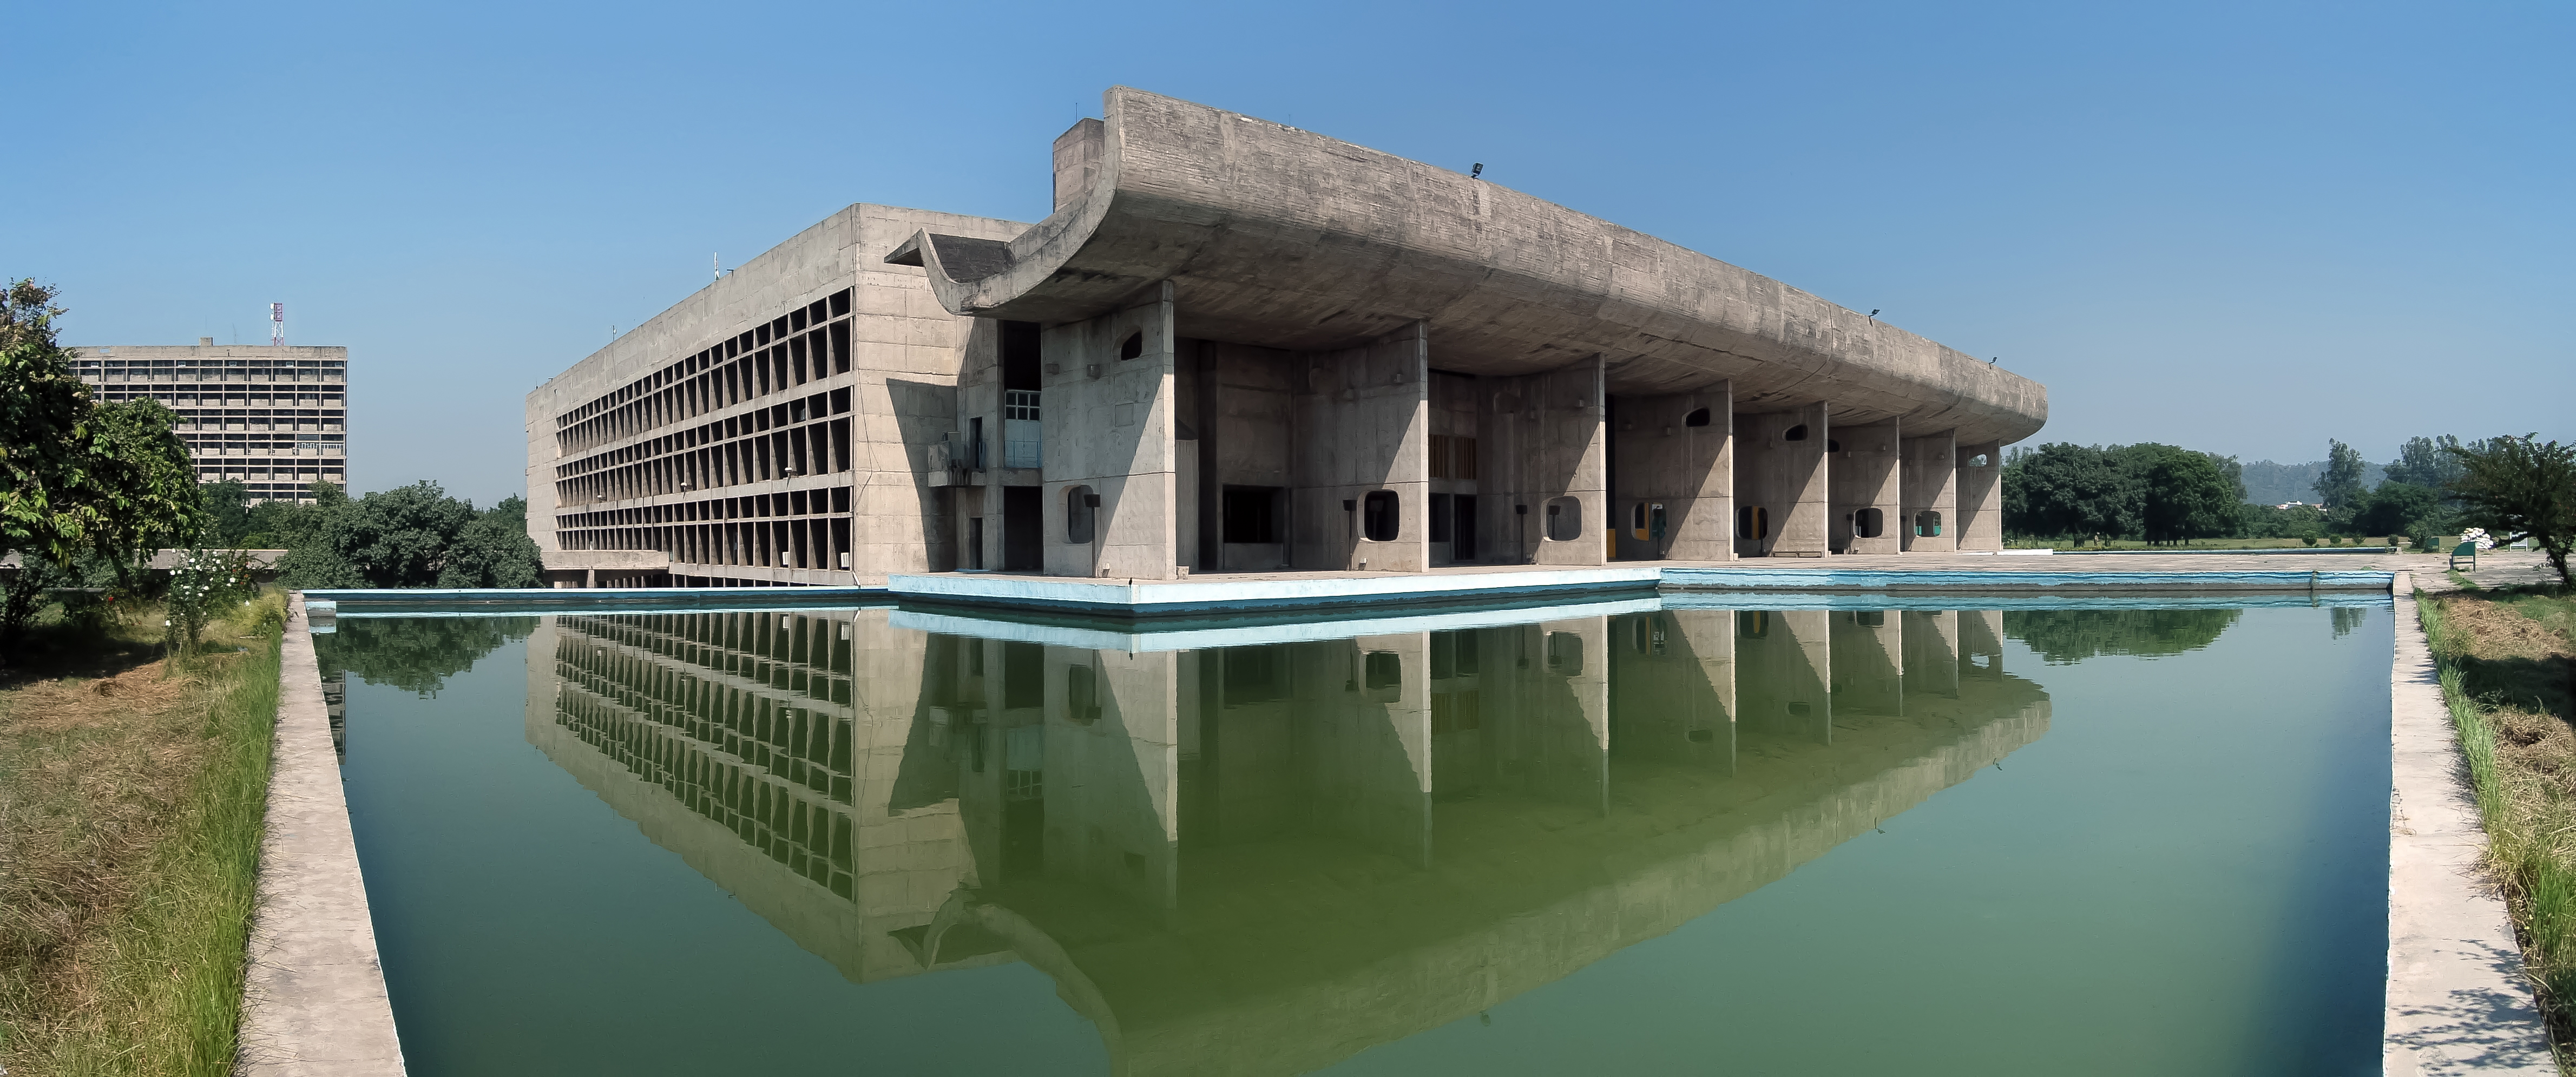 Palace of assembly chandigarh for Architecture le corbusier